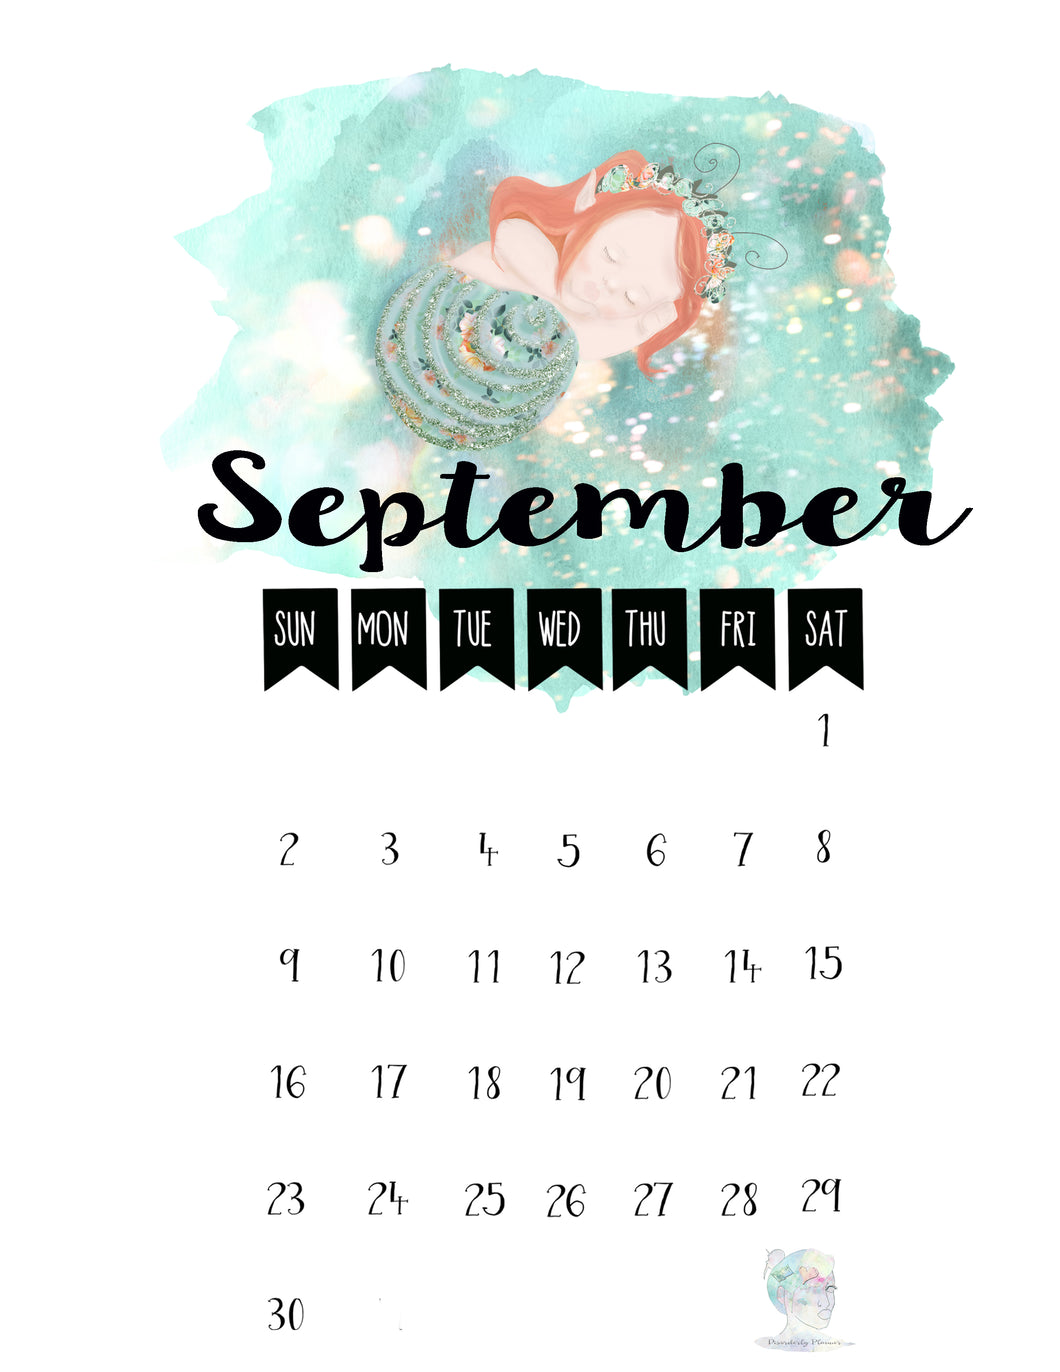 September Calendar 2018 -DIGITAL FILE ONLY - Personal Use Only